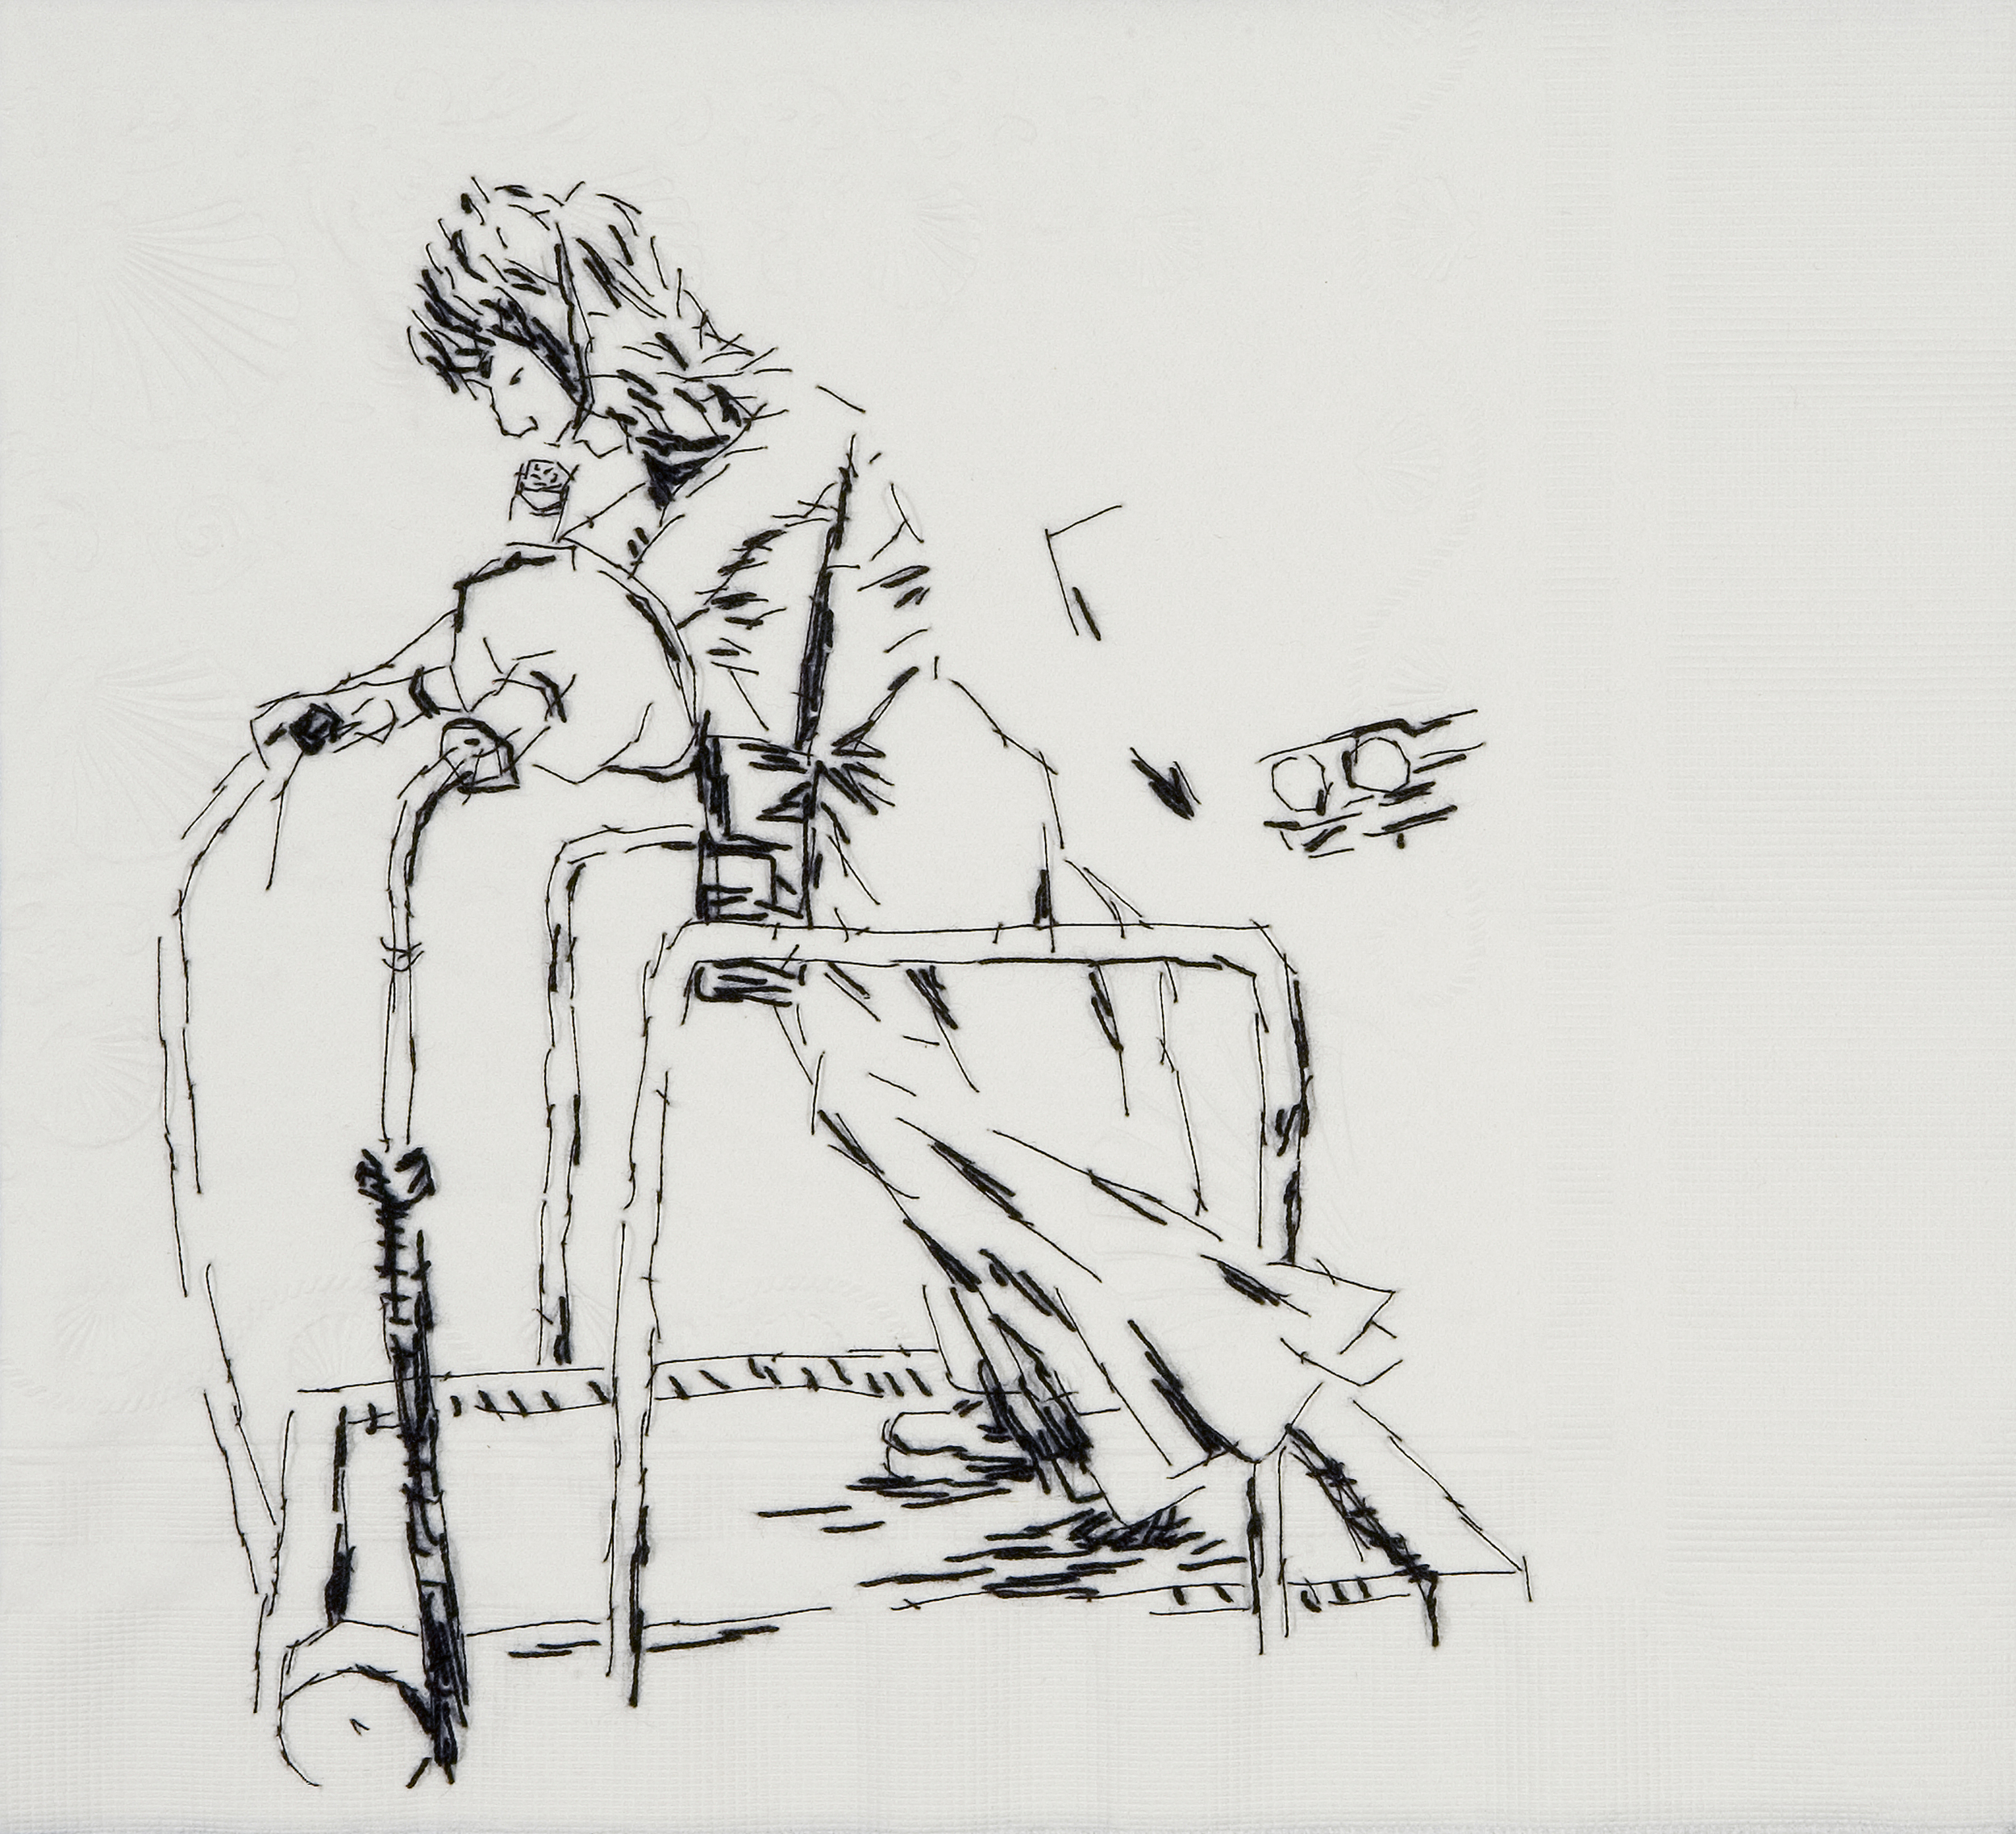 "Sister Wife Linda (The Story of My Life, 1973)  Black thread on paper napkin, 7.5"" x 8.5"", 2008"